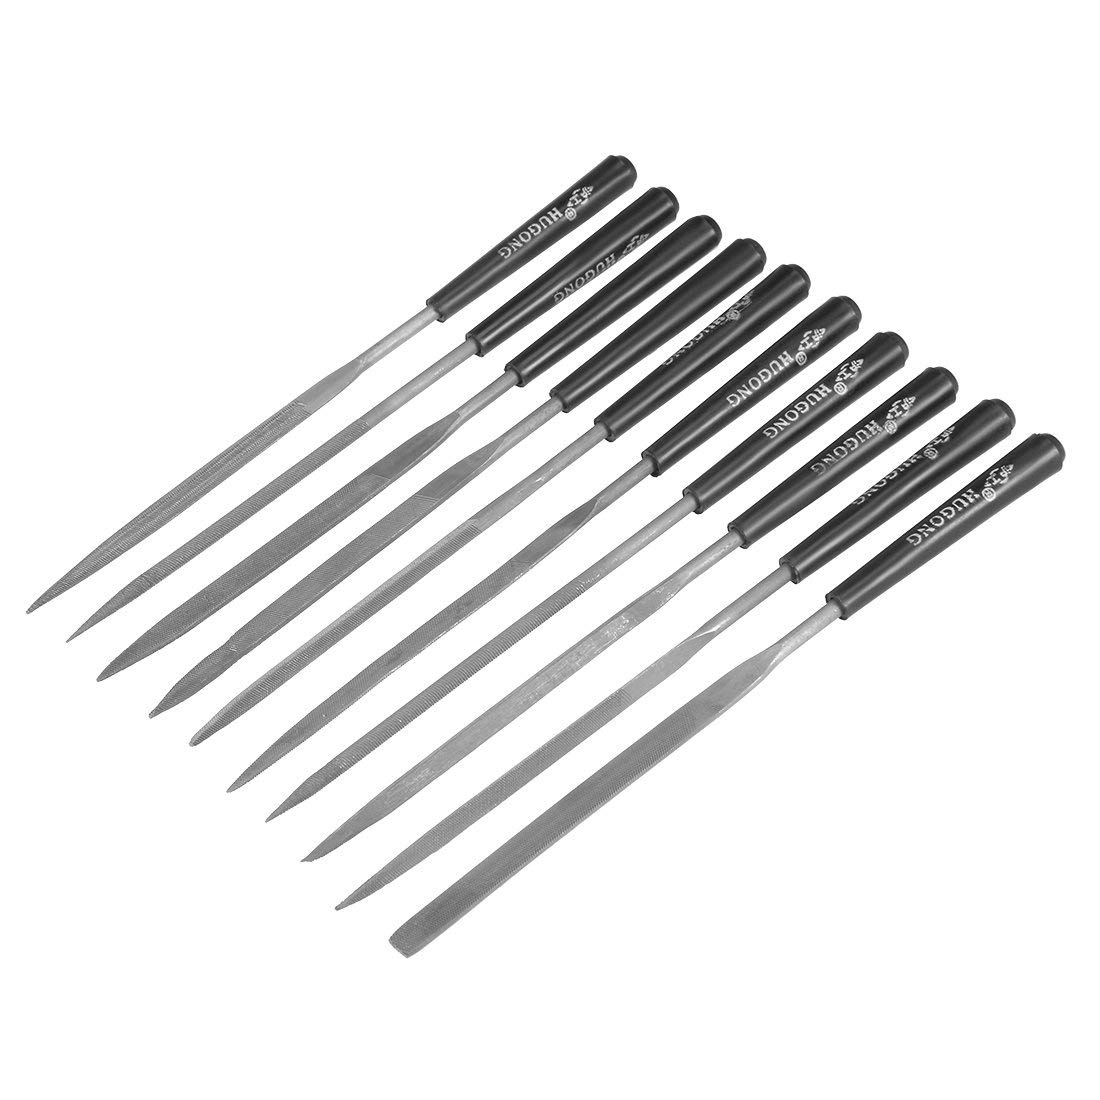 uxcell 10Pcs Smooth Cut Steel Needle File Set with Plastic Handle, 3mm x 140mm